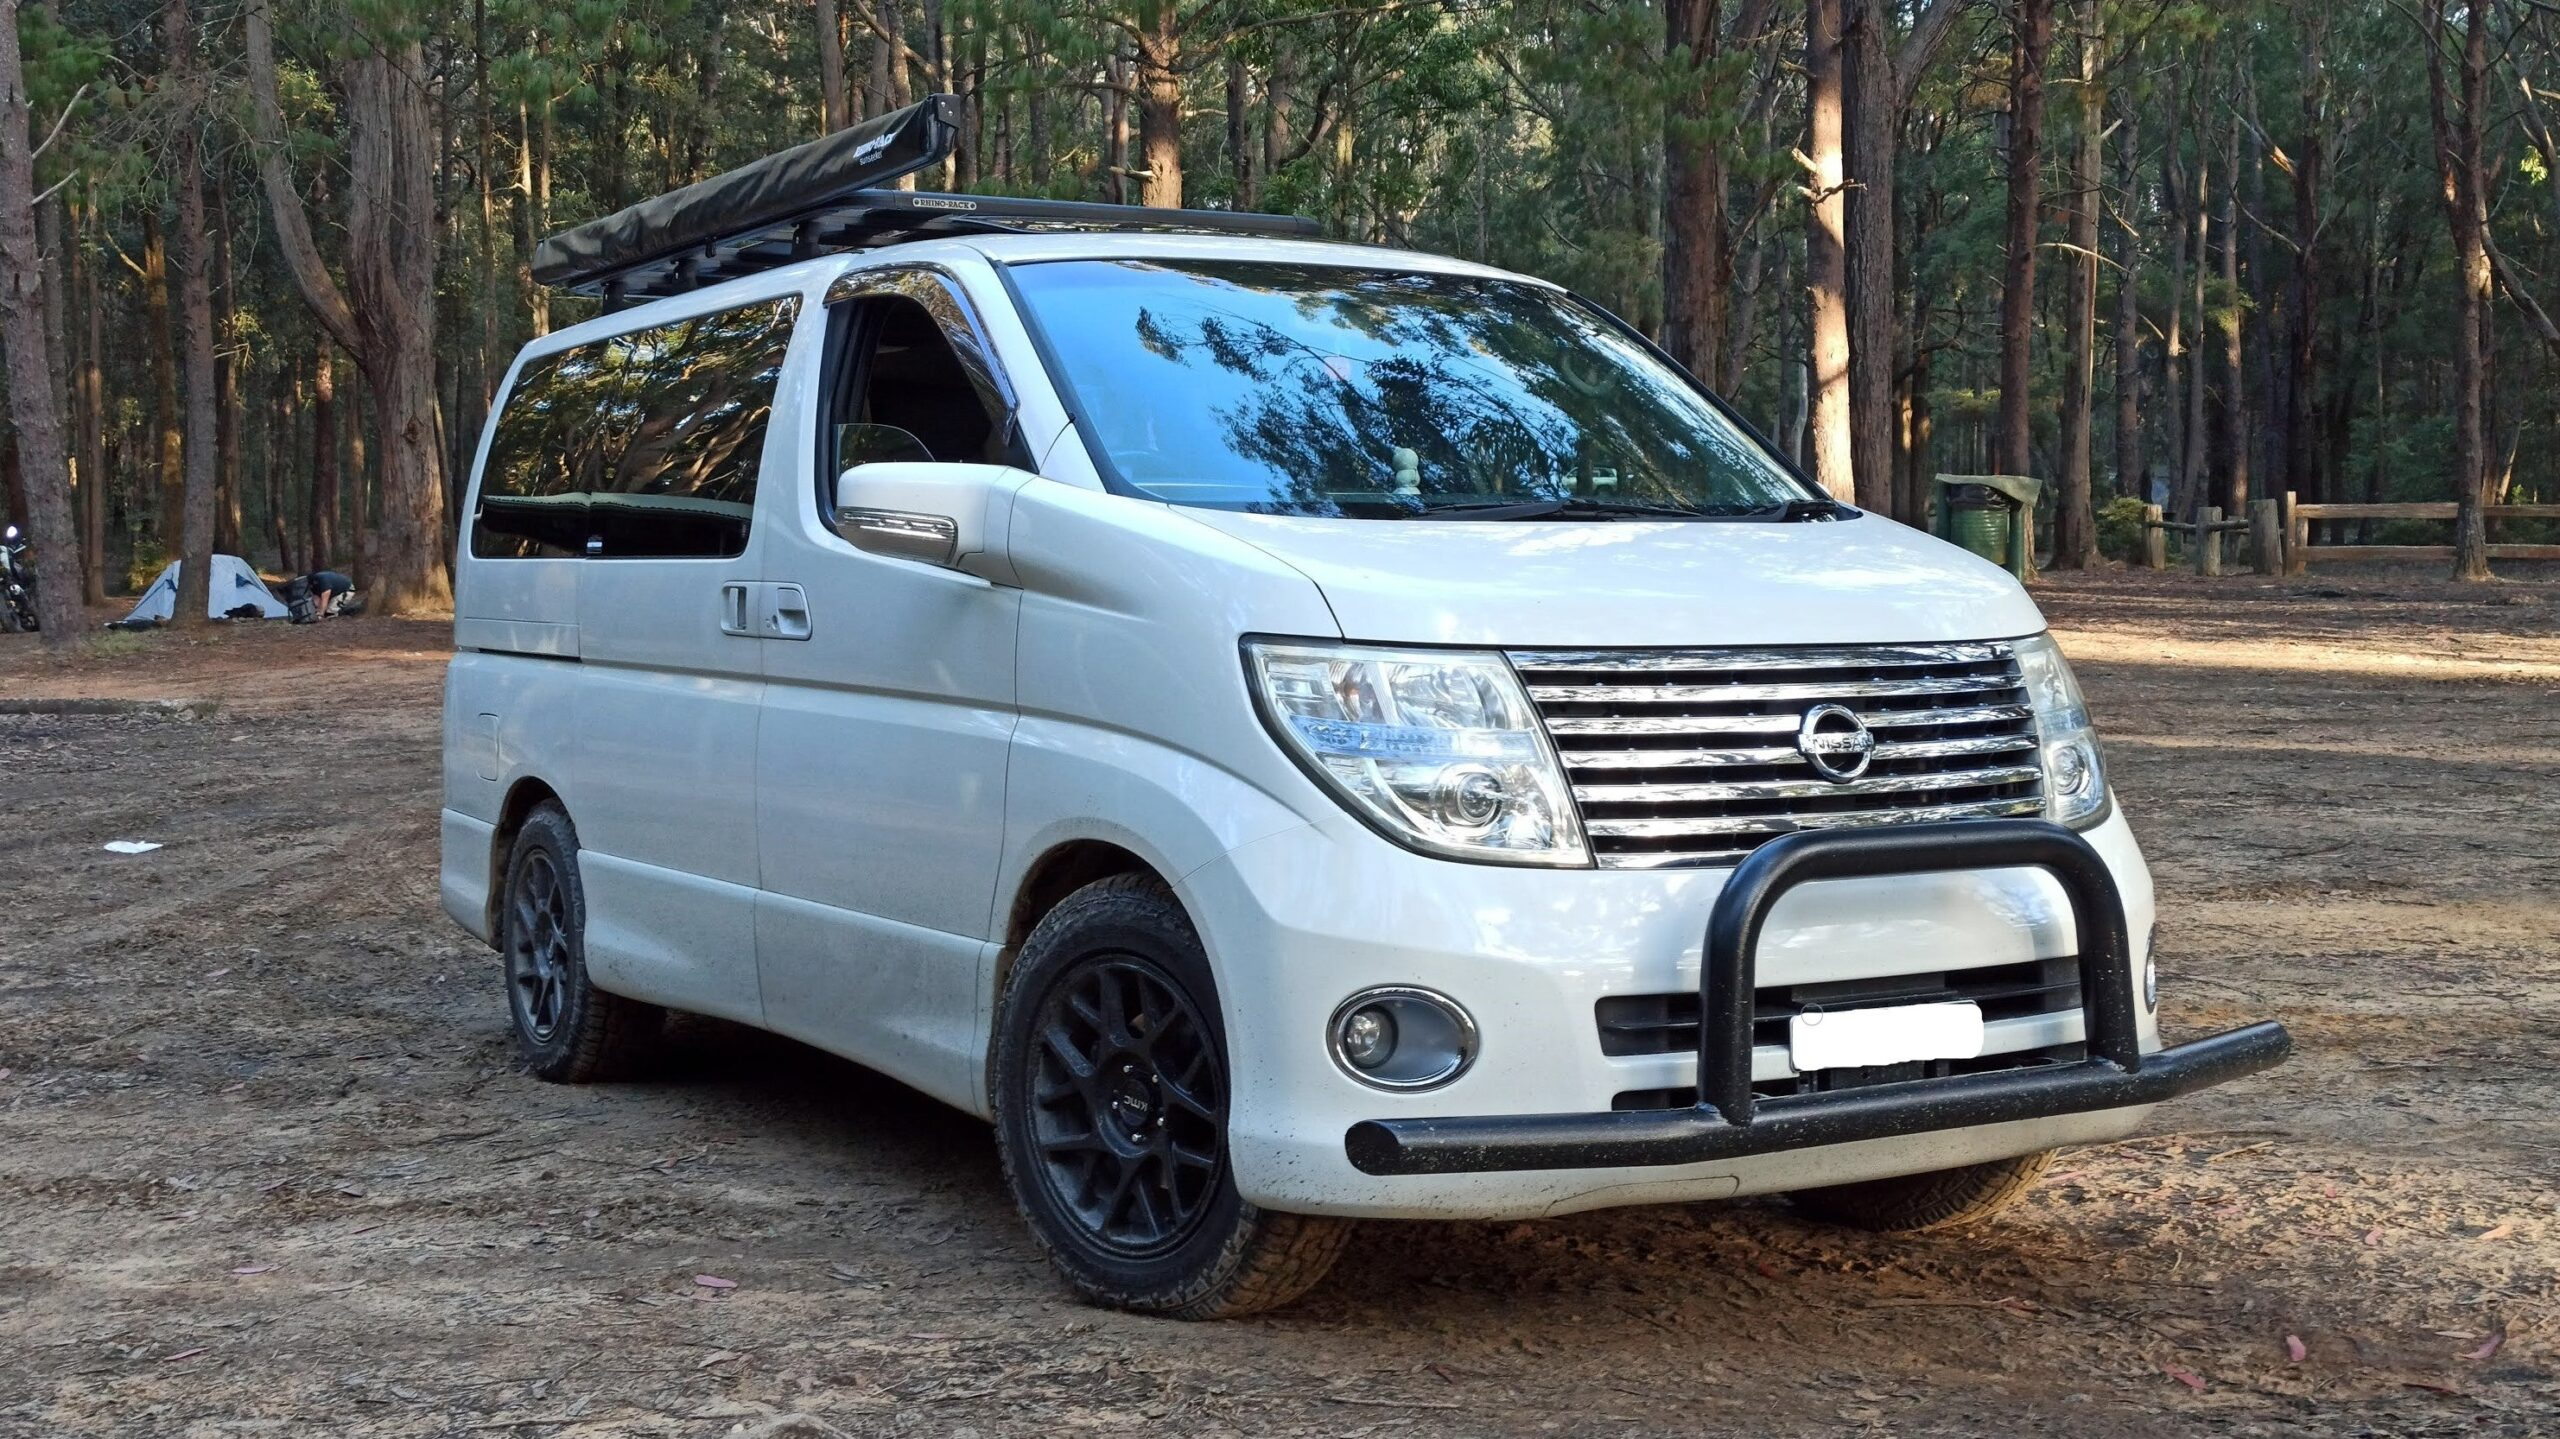 Nissan Elgrand, What One Should Know About the Luxurious Nissan Elgrand?